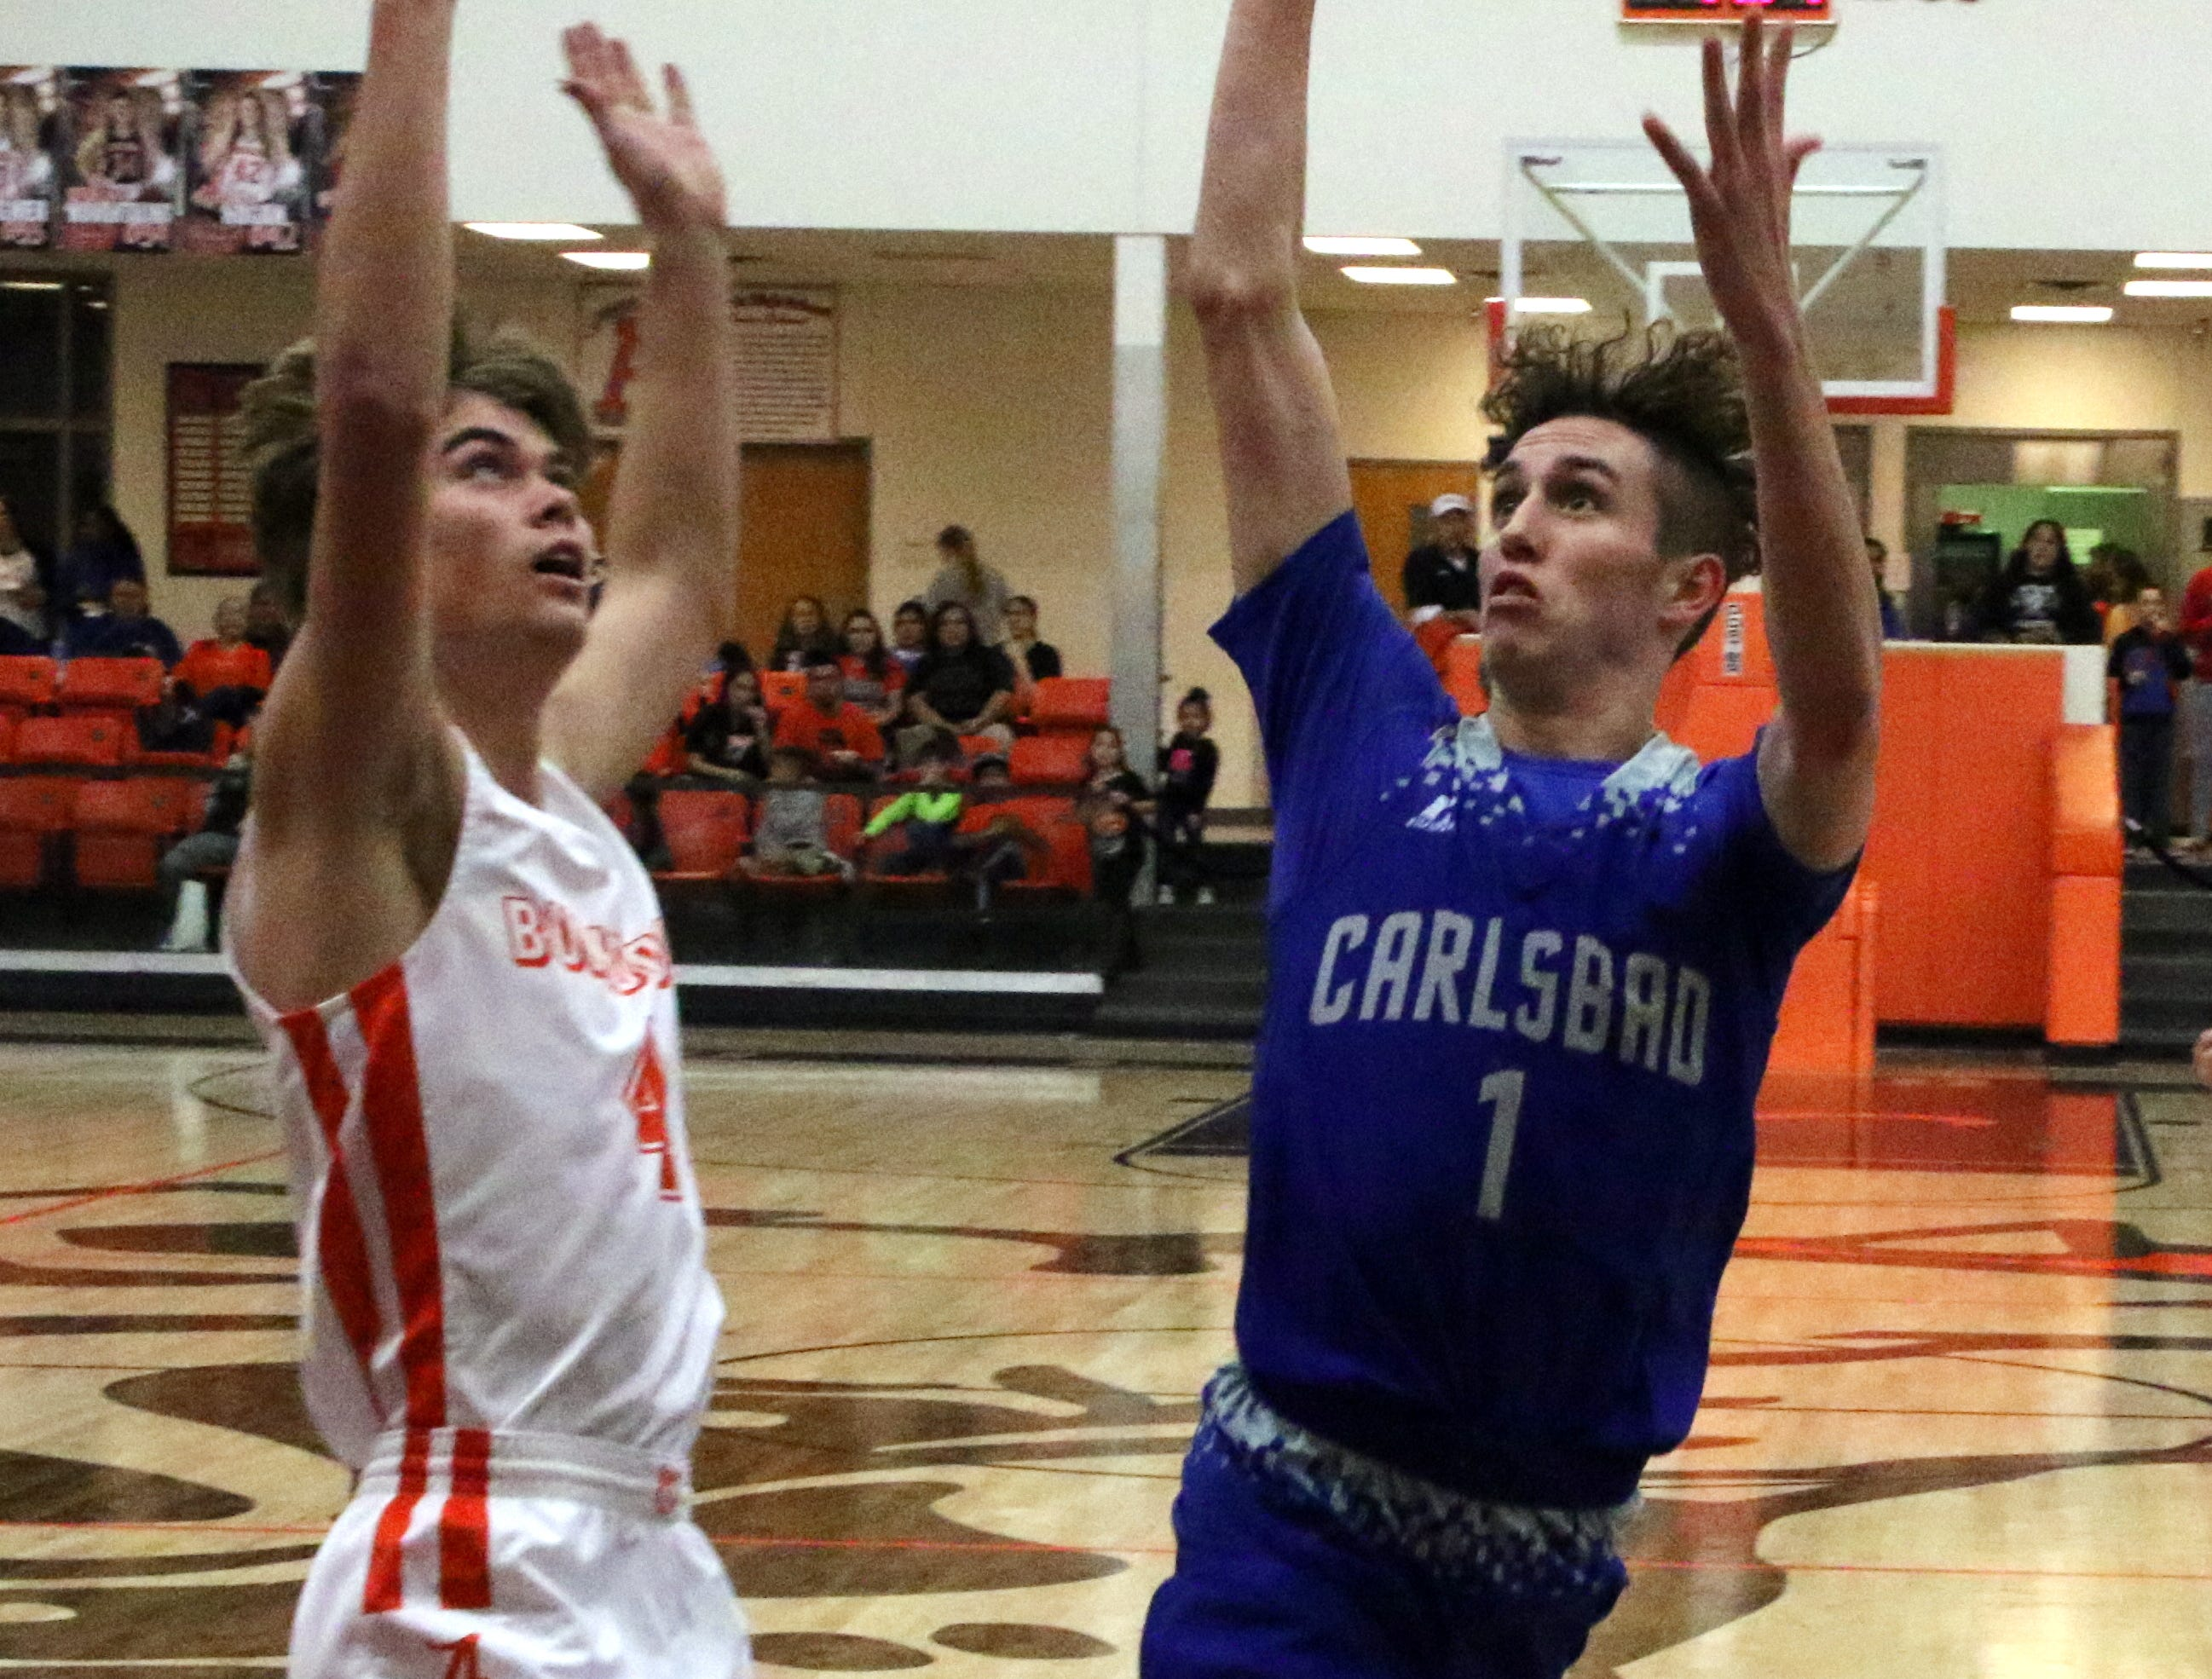 Carlsbad's Josh Sillas takes a contested layup over Artesia's Kale Mauritsen during Friday's game. Carlsbad swept the season series with a 59-56 win.